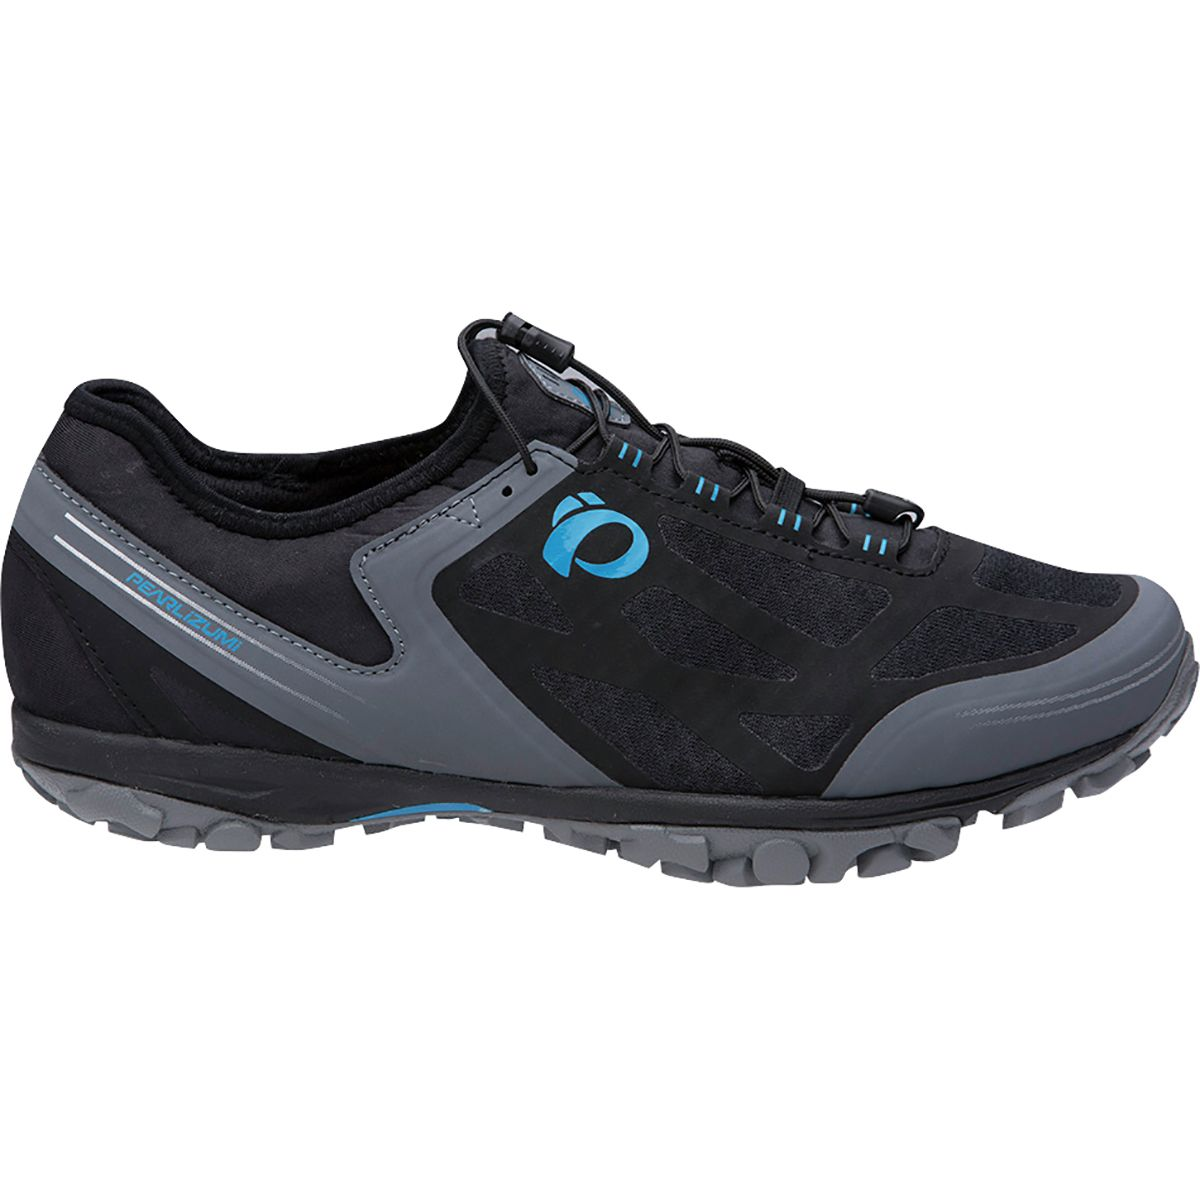 Pearl IzumiX-ALP JOURNEY - Cycling shoes - black/shadow grey a80Ex